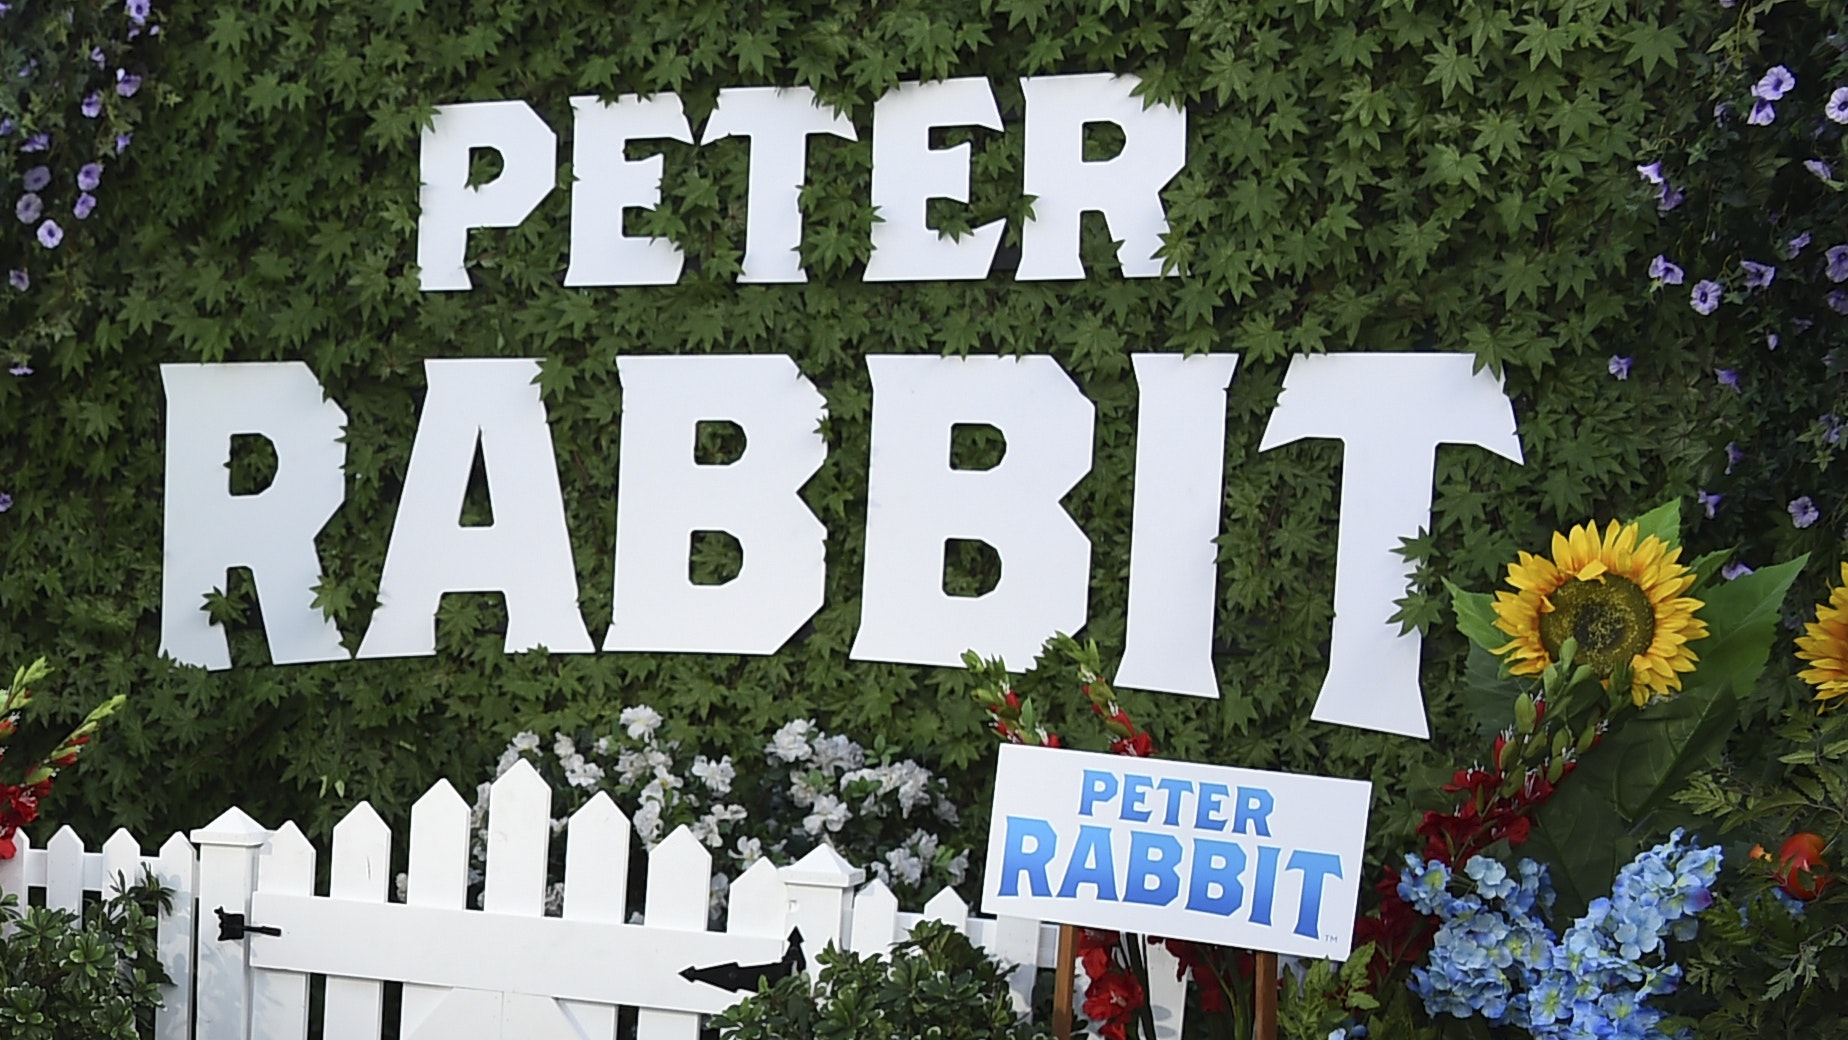 Peter Rabbit in hot water over claims of 'allergy bullying'